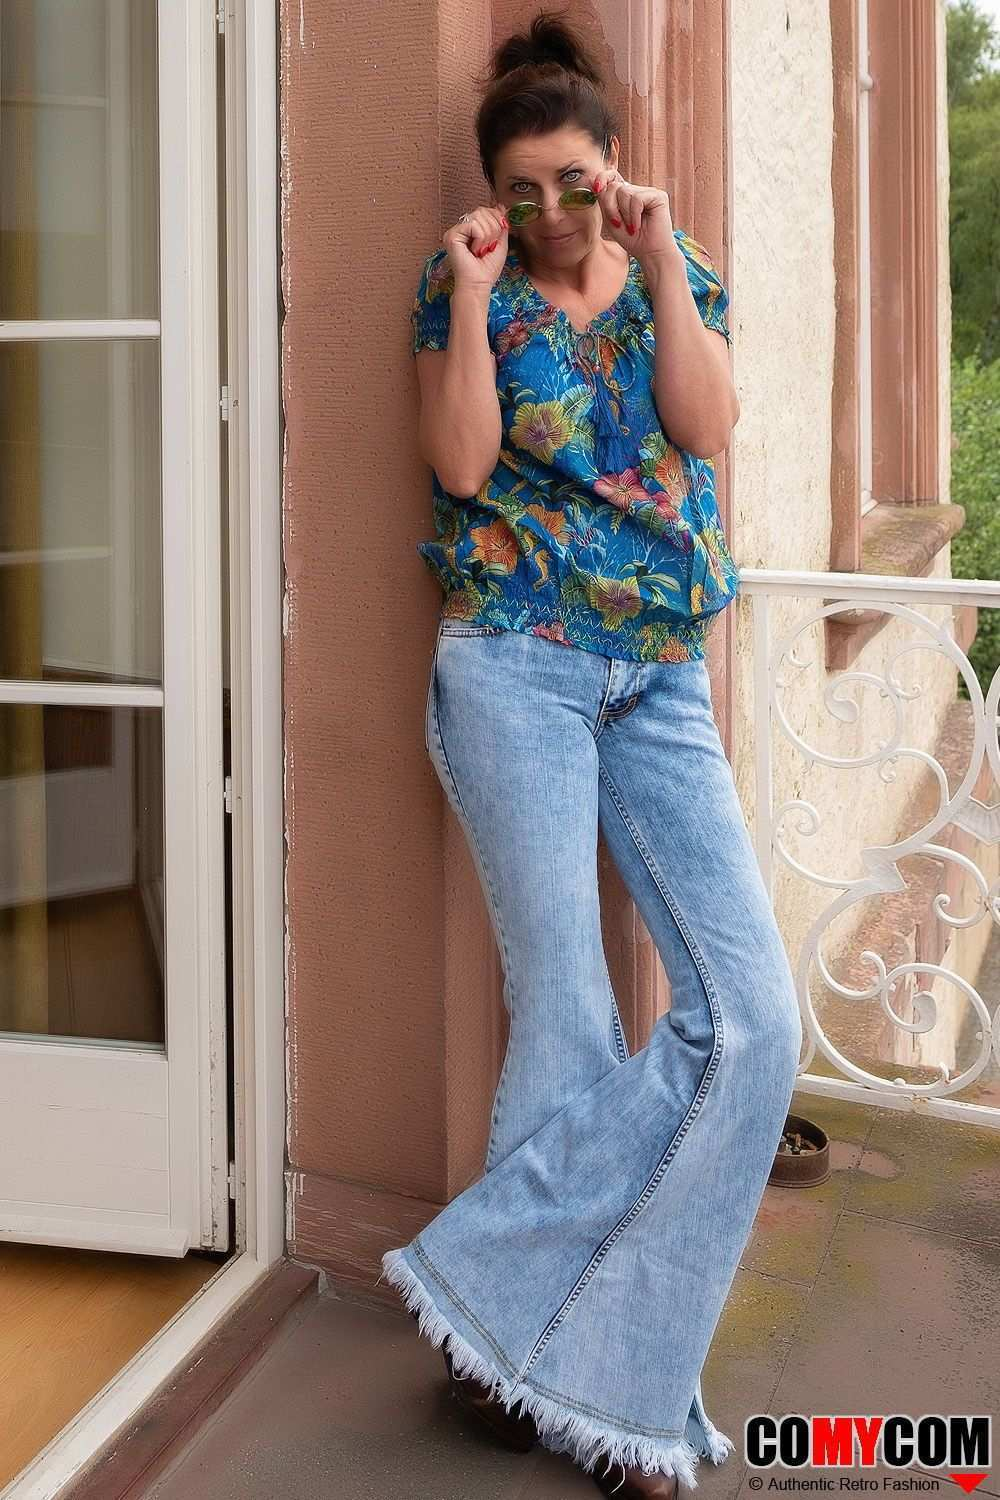 Mega Jeans With Flare Mega Flare Or Flare Jeans With Monster Flare Cool Retro Women S Blouse And A Pair Of Jean 70er Jahre Mode Bekleidungsstile Damenblusen